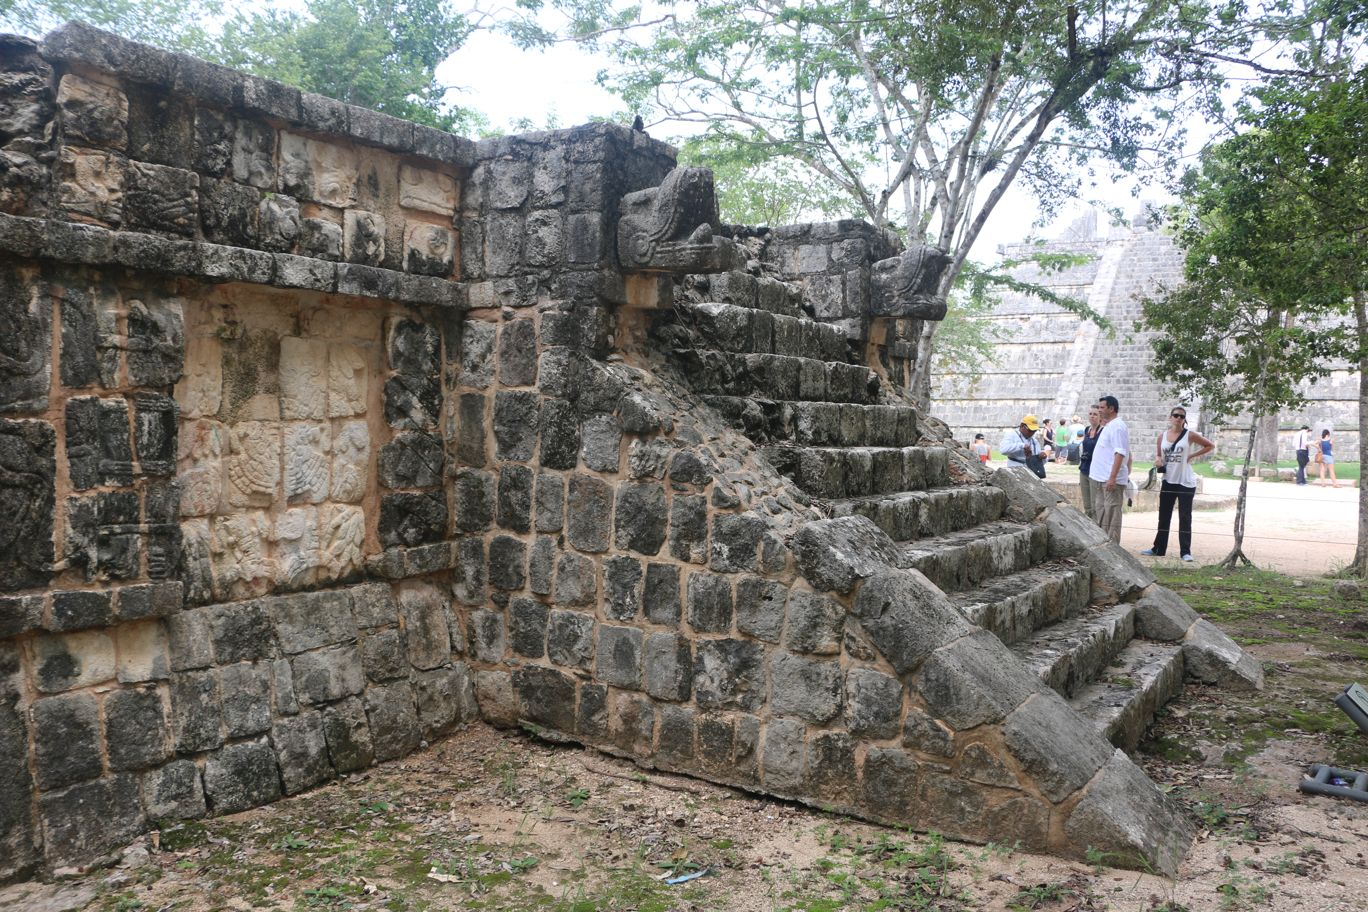 Stones warily guarding the secrets of the Mayas